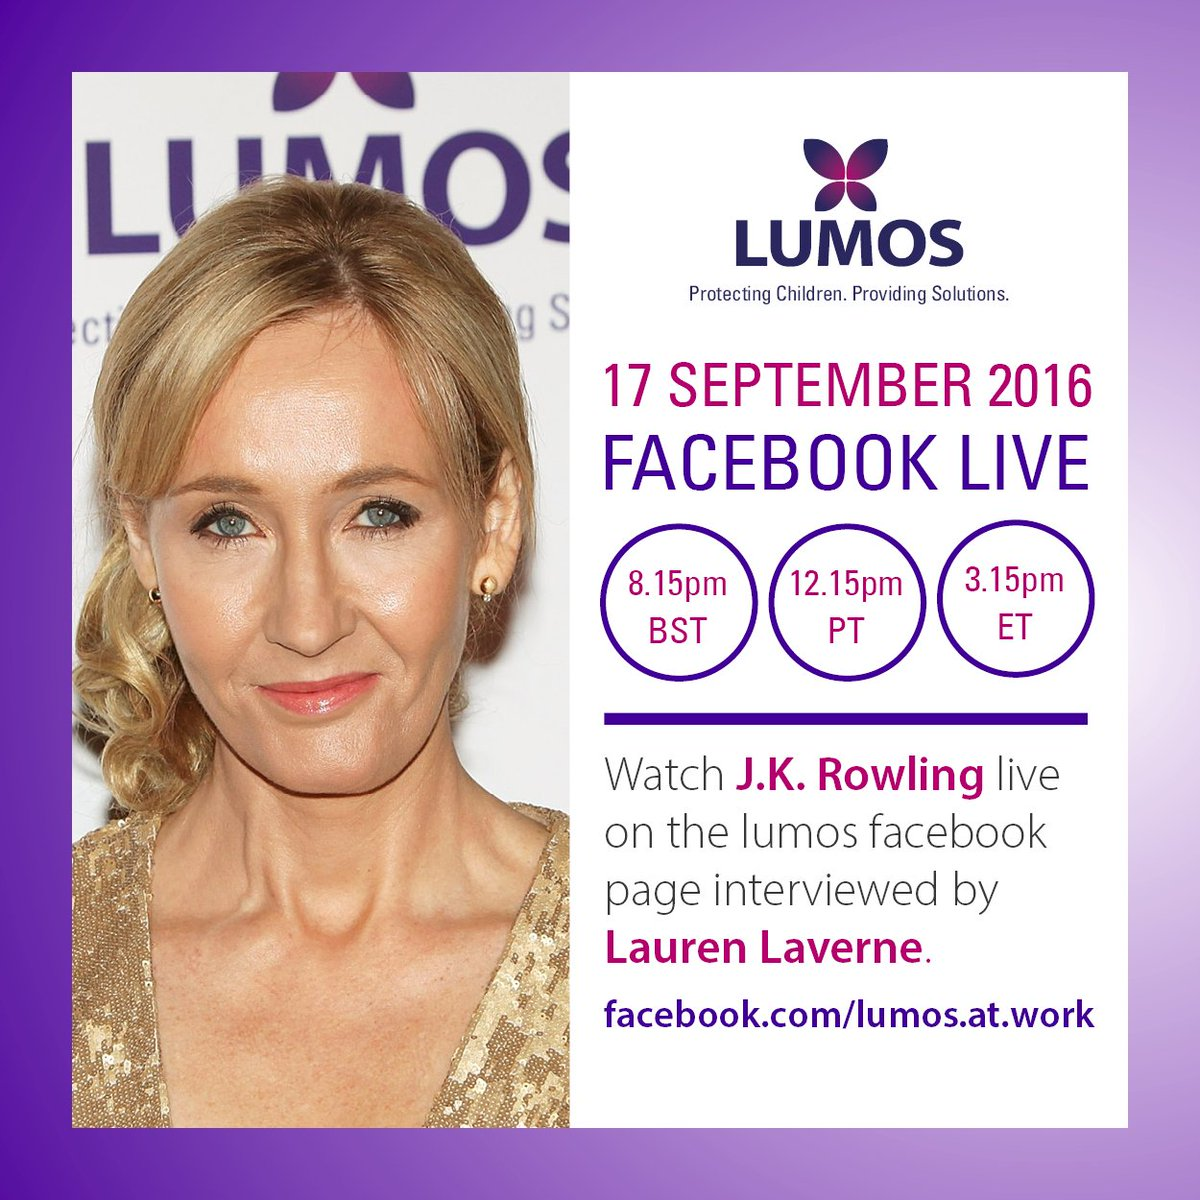 This Saturday @jk_rowling will be live on Facebook to talk all things Lumos w @laurenlaverne https://t.co/6Xl8qqLVhj https://t.co/CDUF3mUeqZ